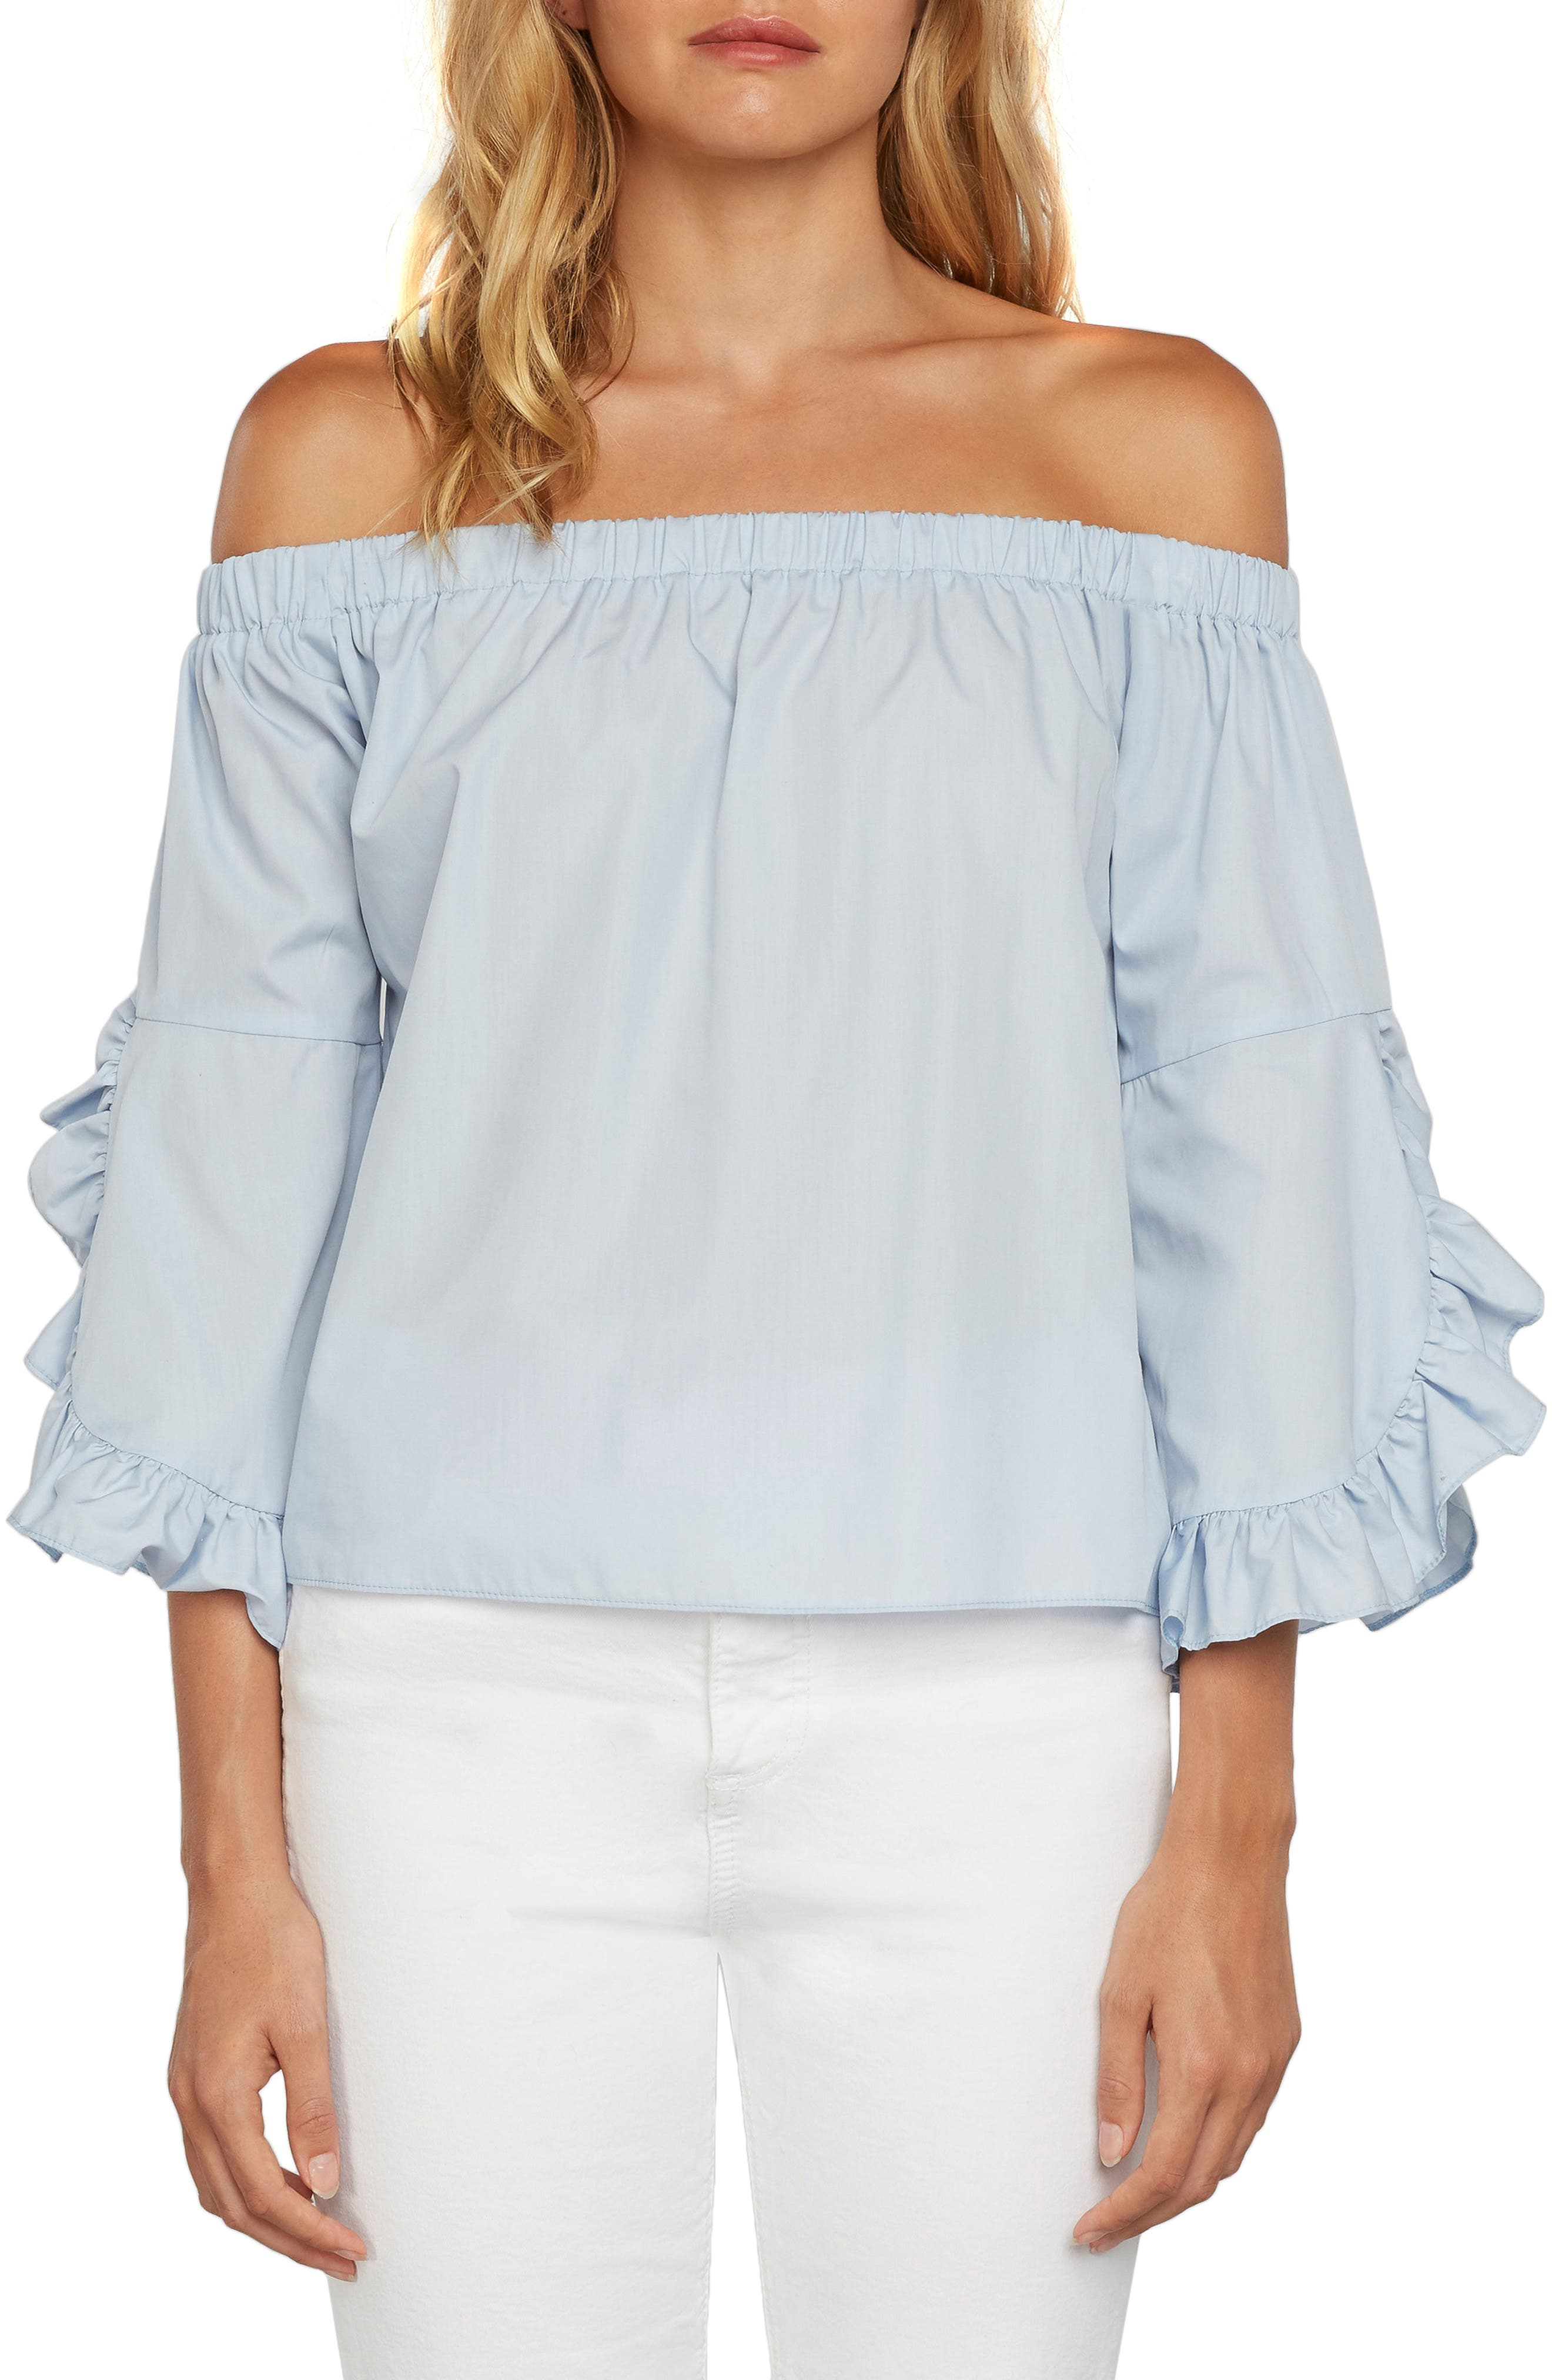 Miley Off the Shoulder Top,                             Main thumbnail 1, color,                             Periwinkle